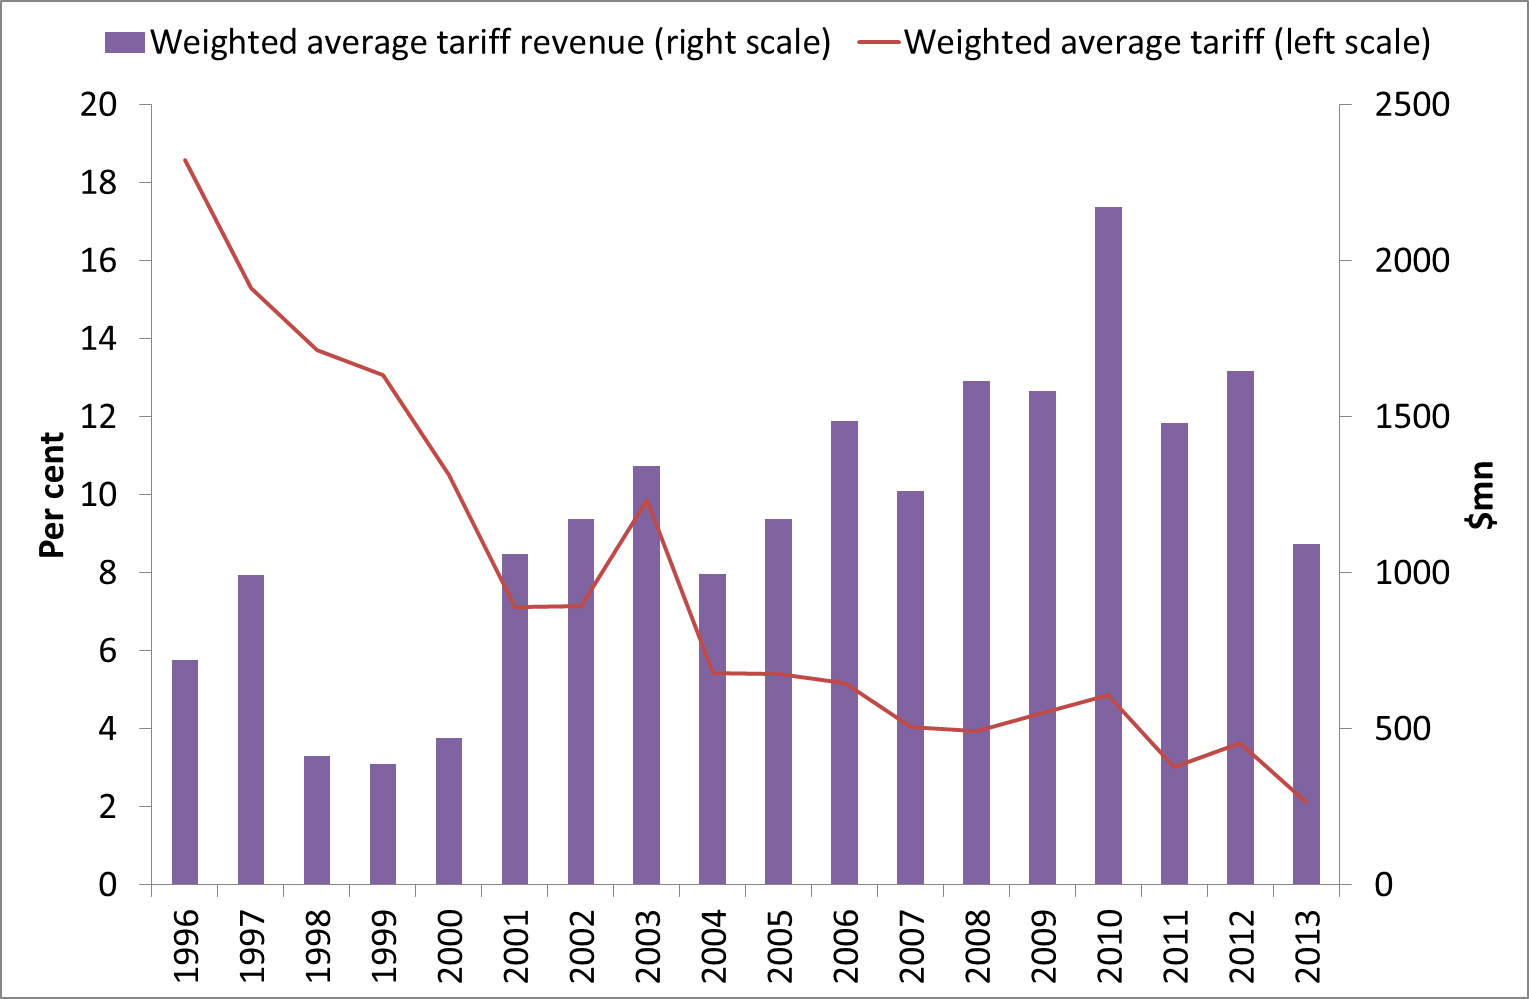 Applied tariffs and trade tax revenues of African countries, 1996-2013 (per cent and $million)